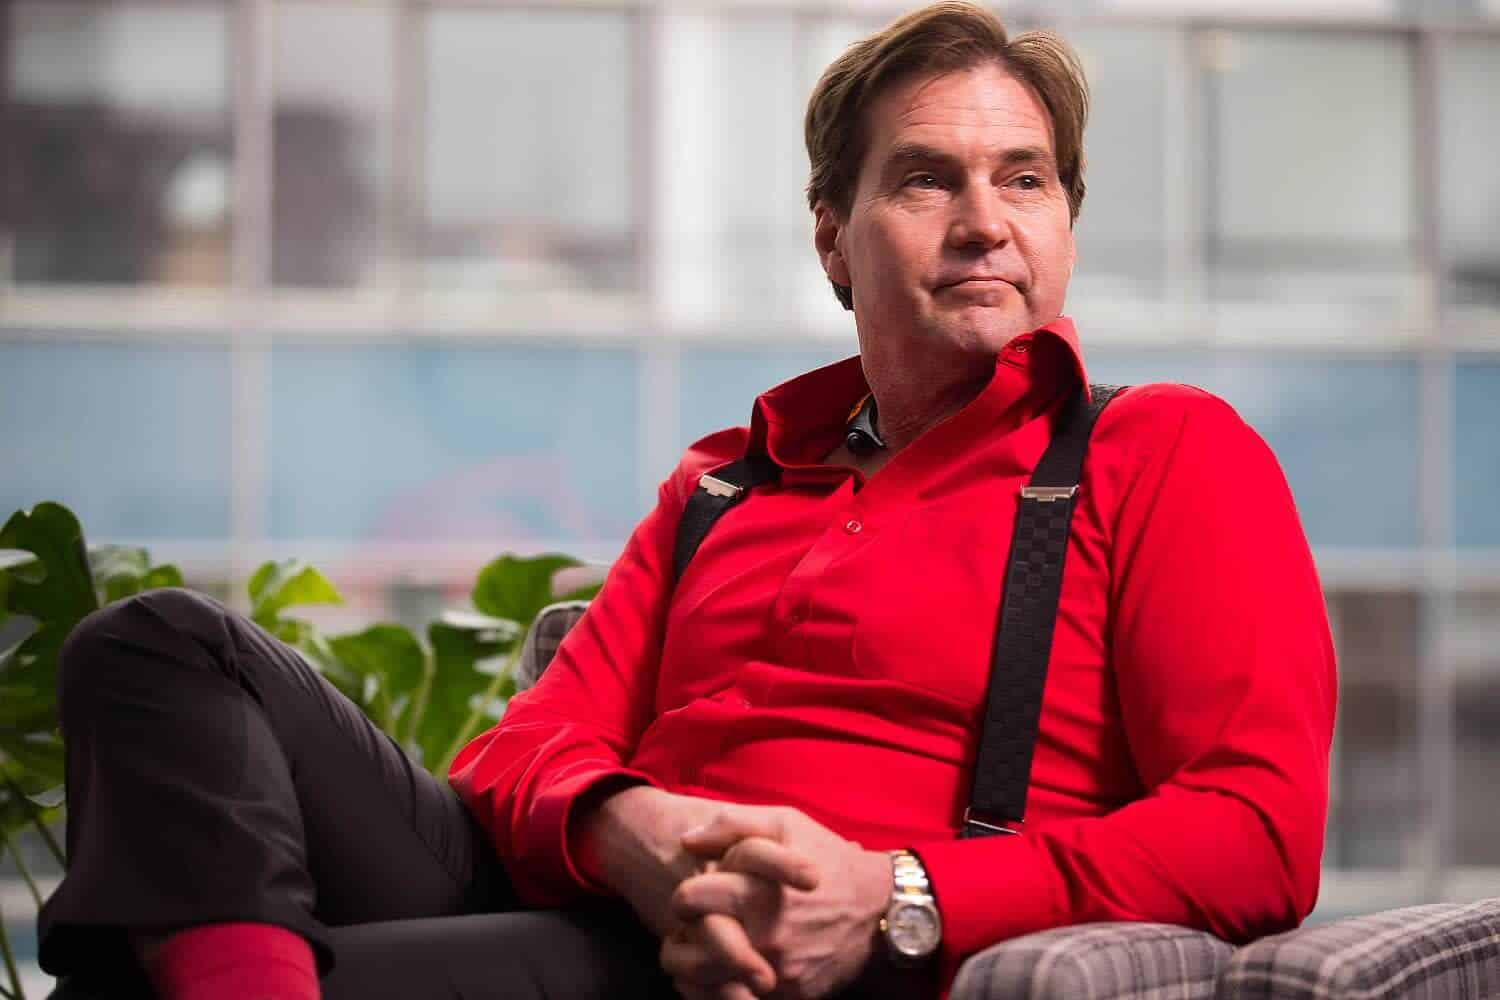 Craig Wright in Catch-22 situation, Denies Transferring Satoshi Coins